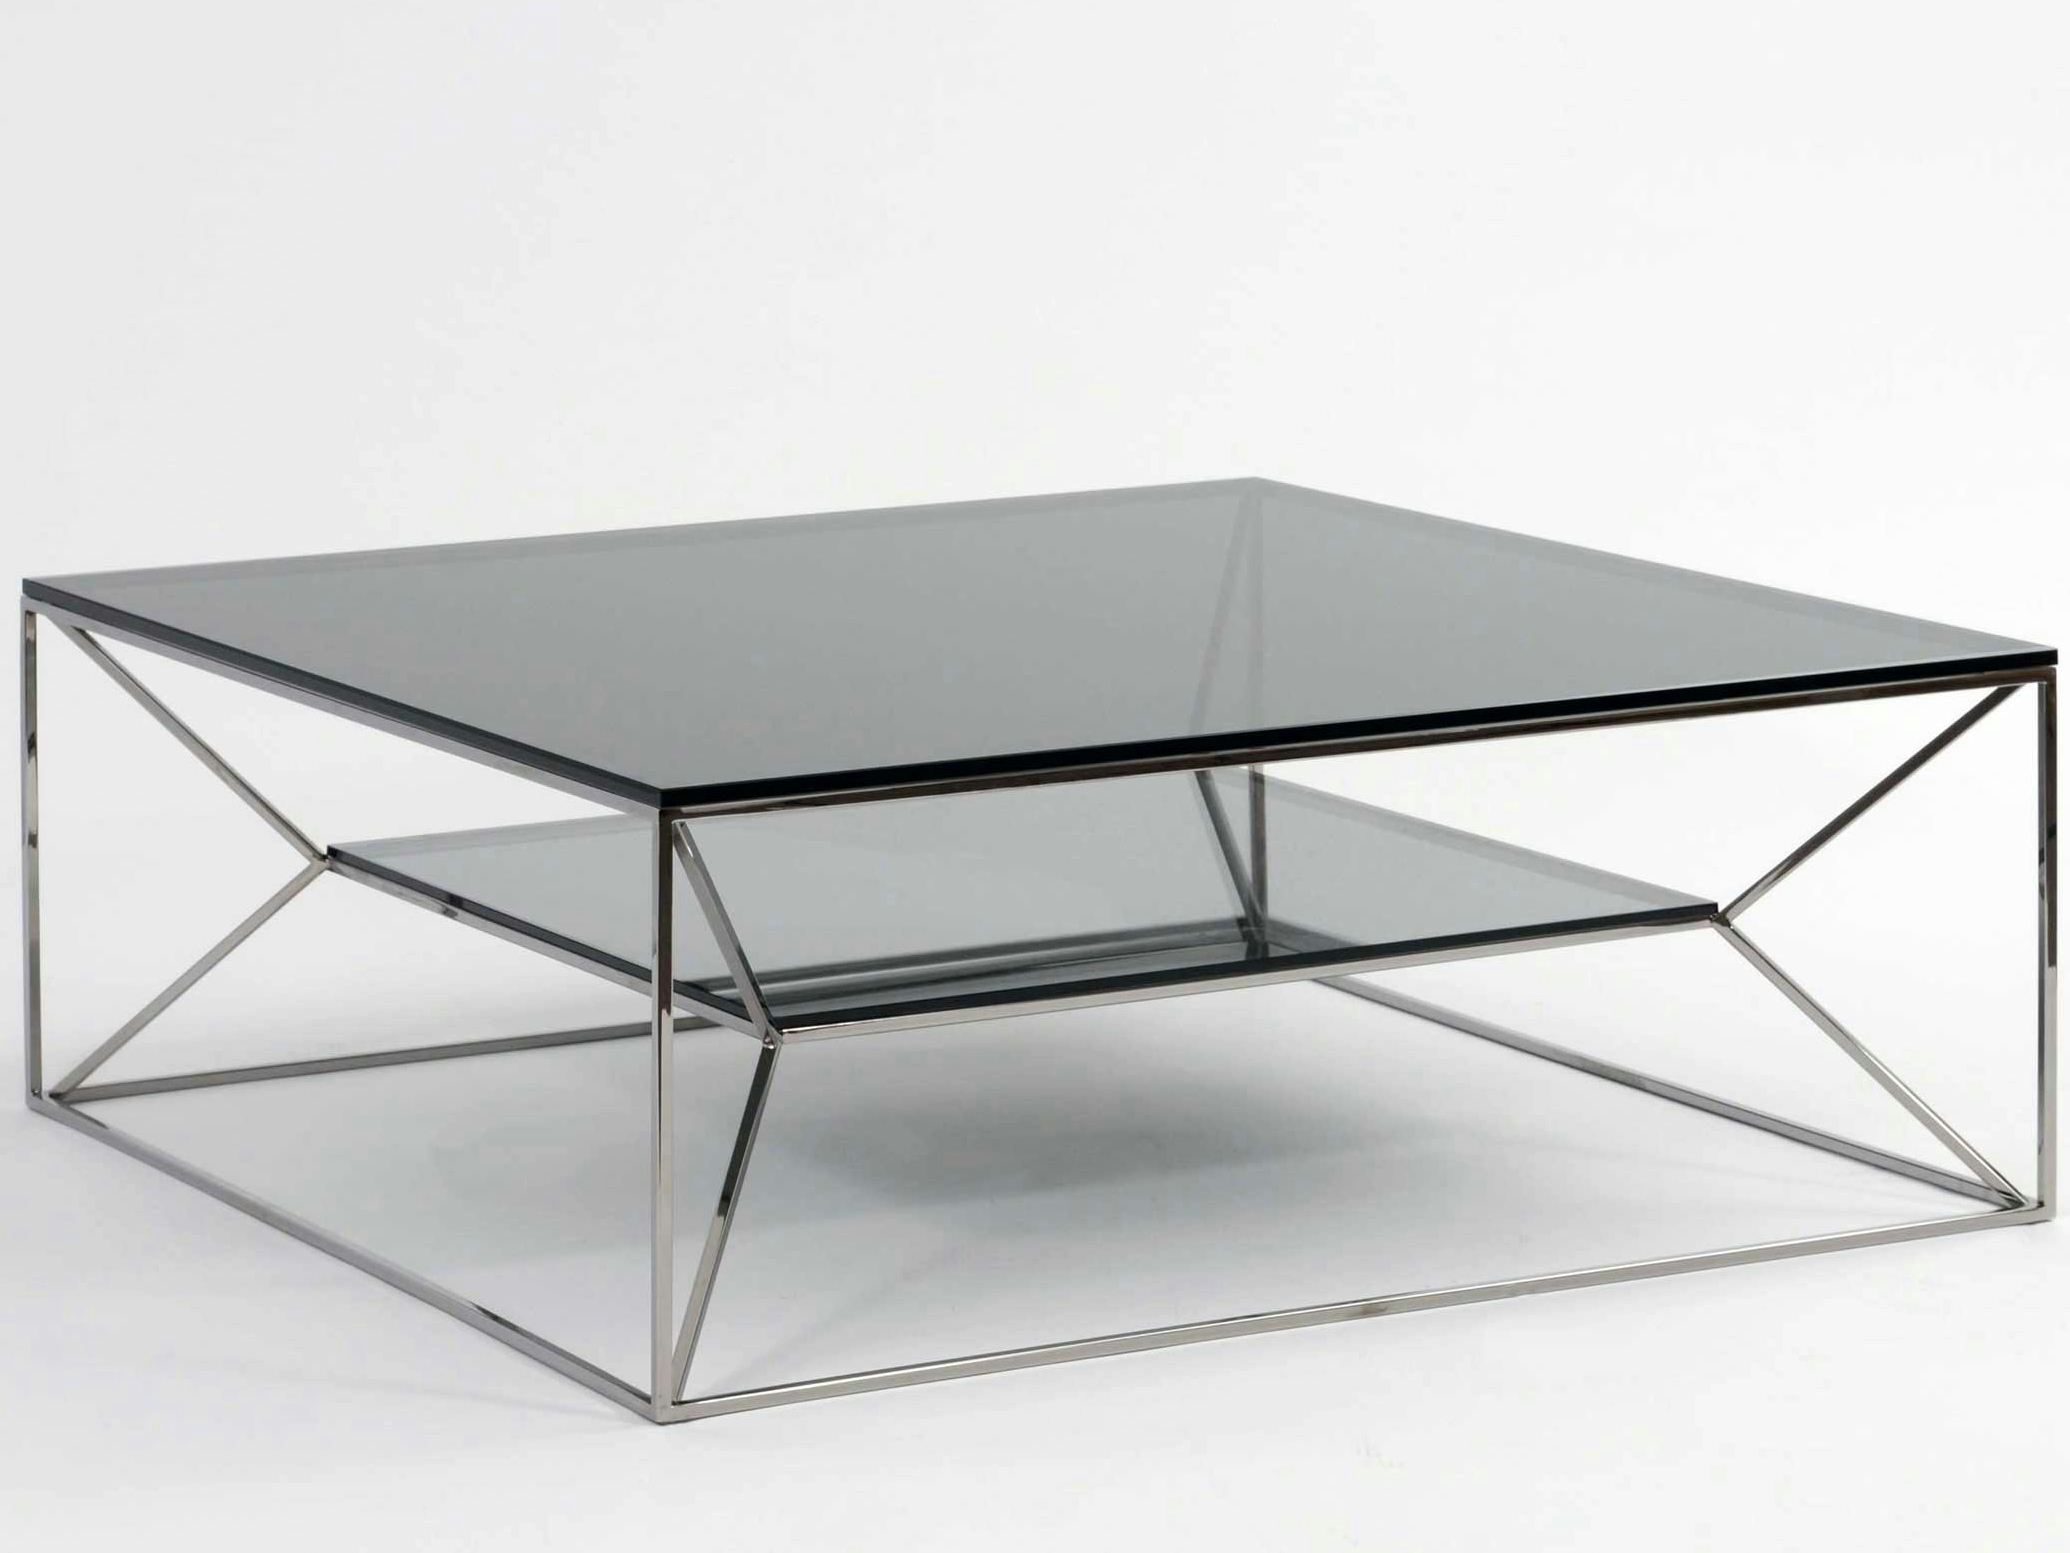 Tribeca coffee table by roche bobois design sacha lakic - Table roche et bobois ...